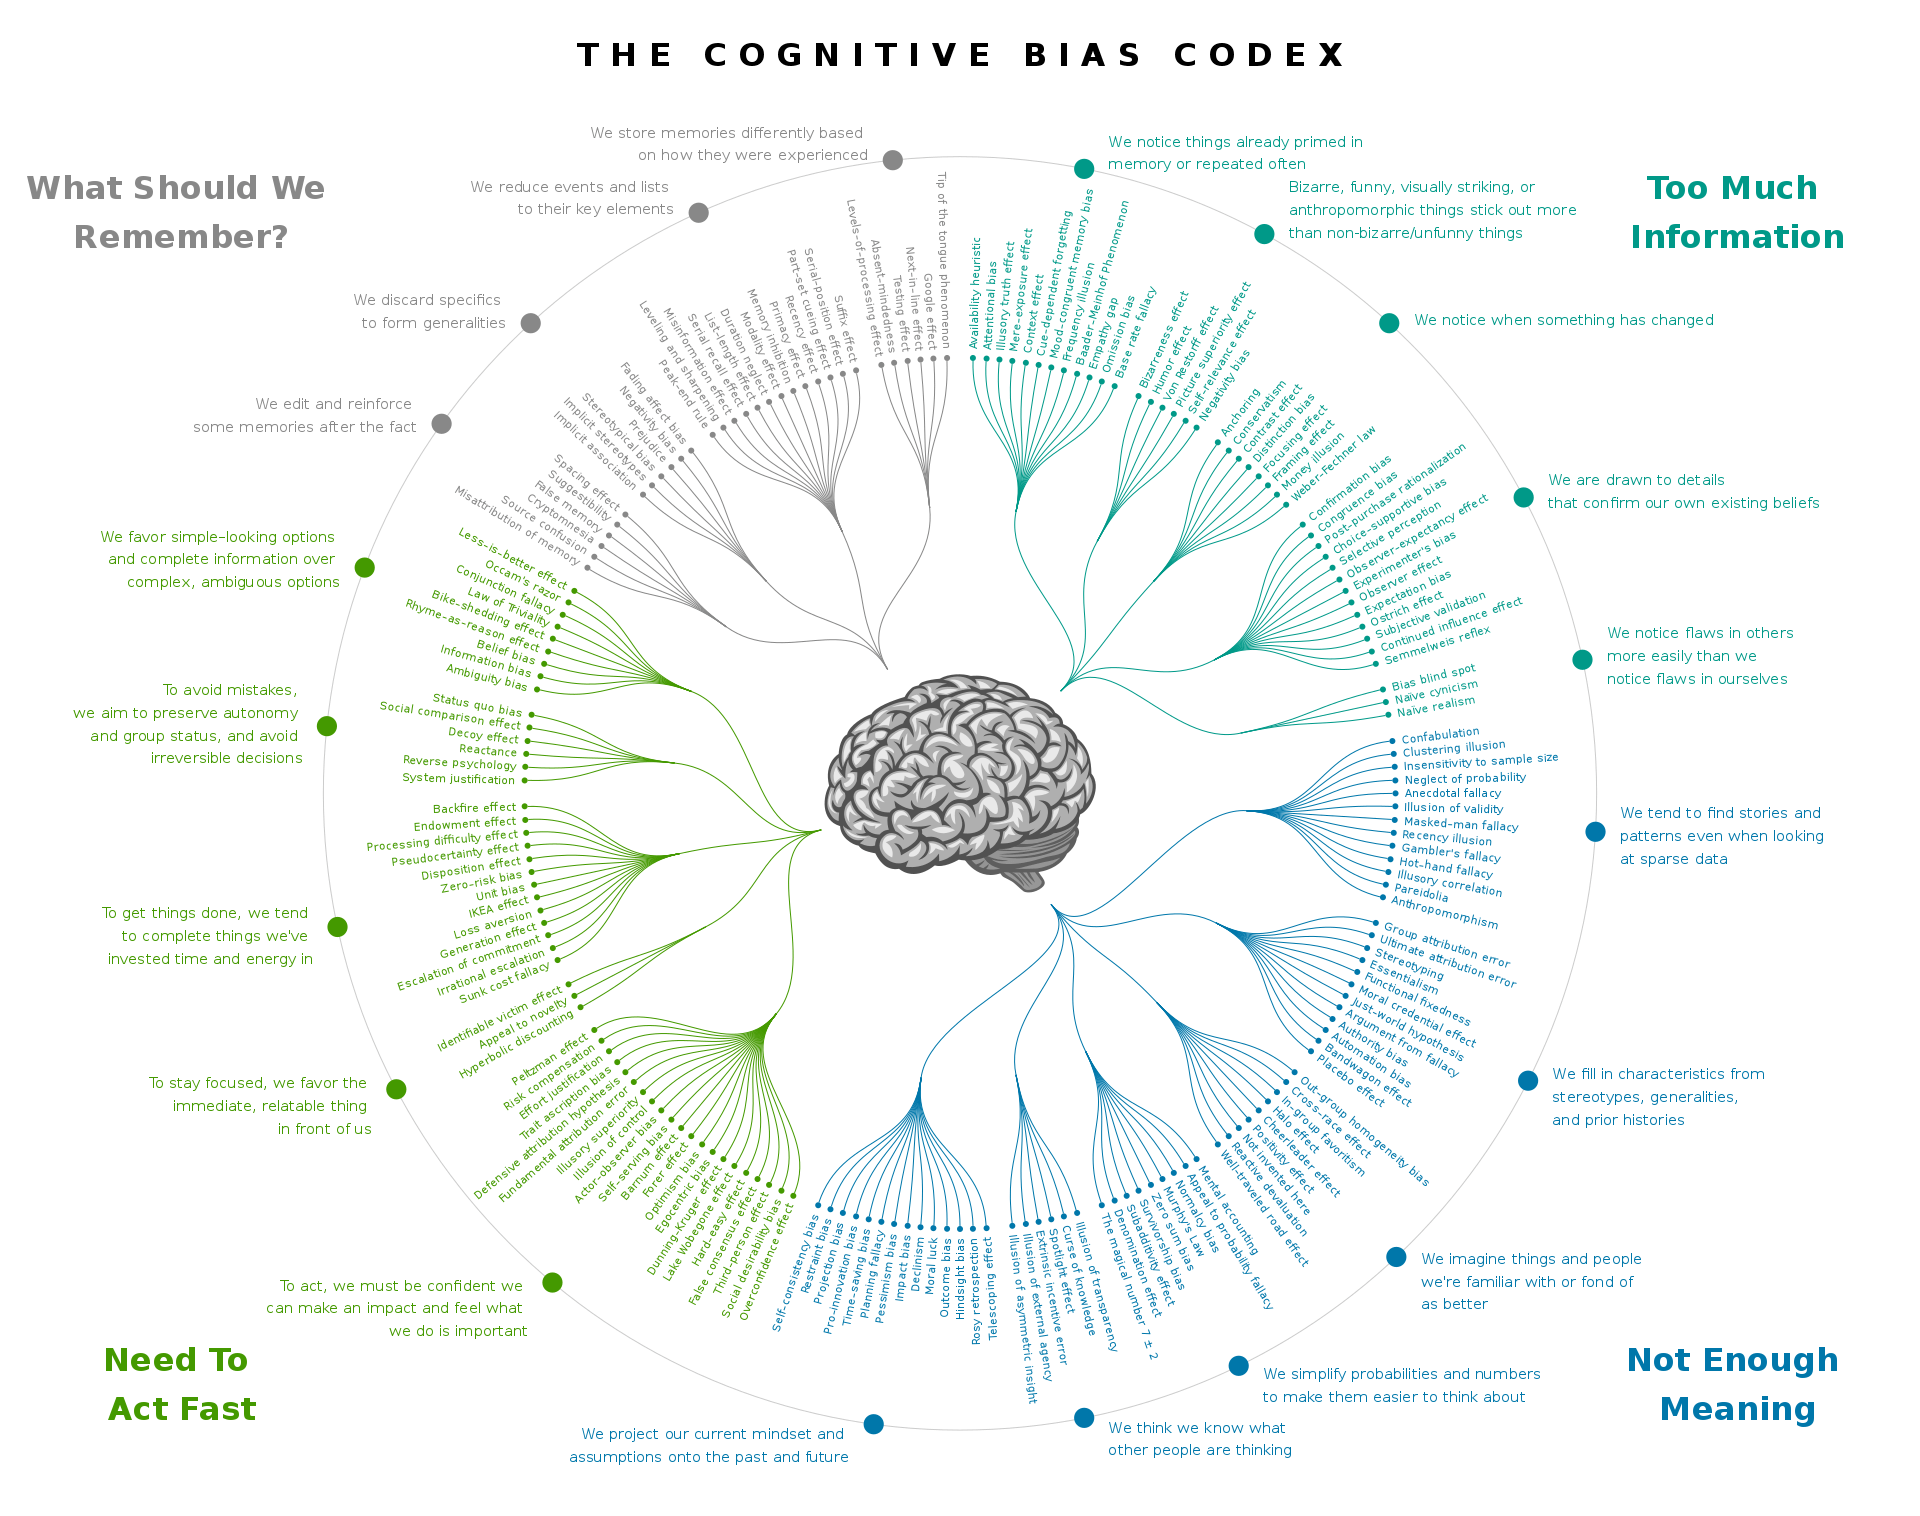 The cognitive bias codex